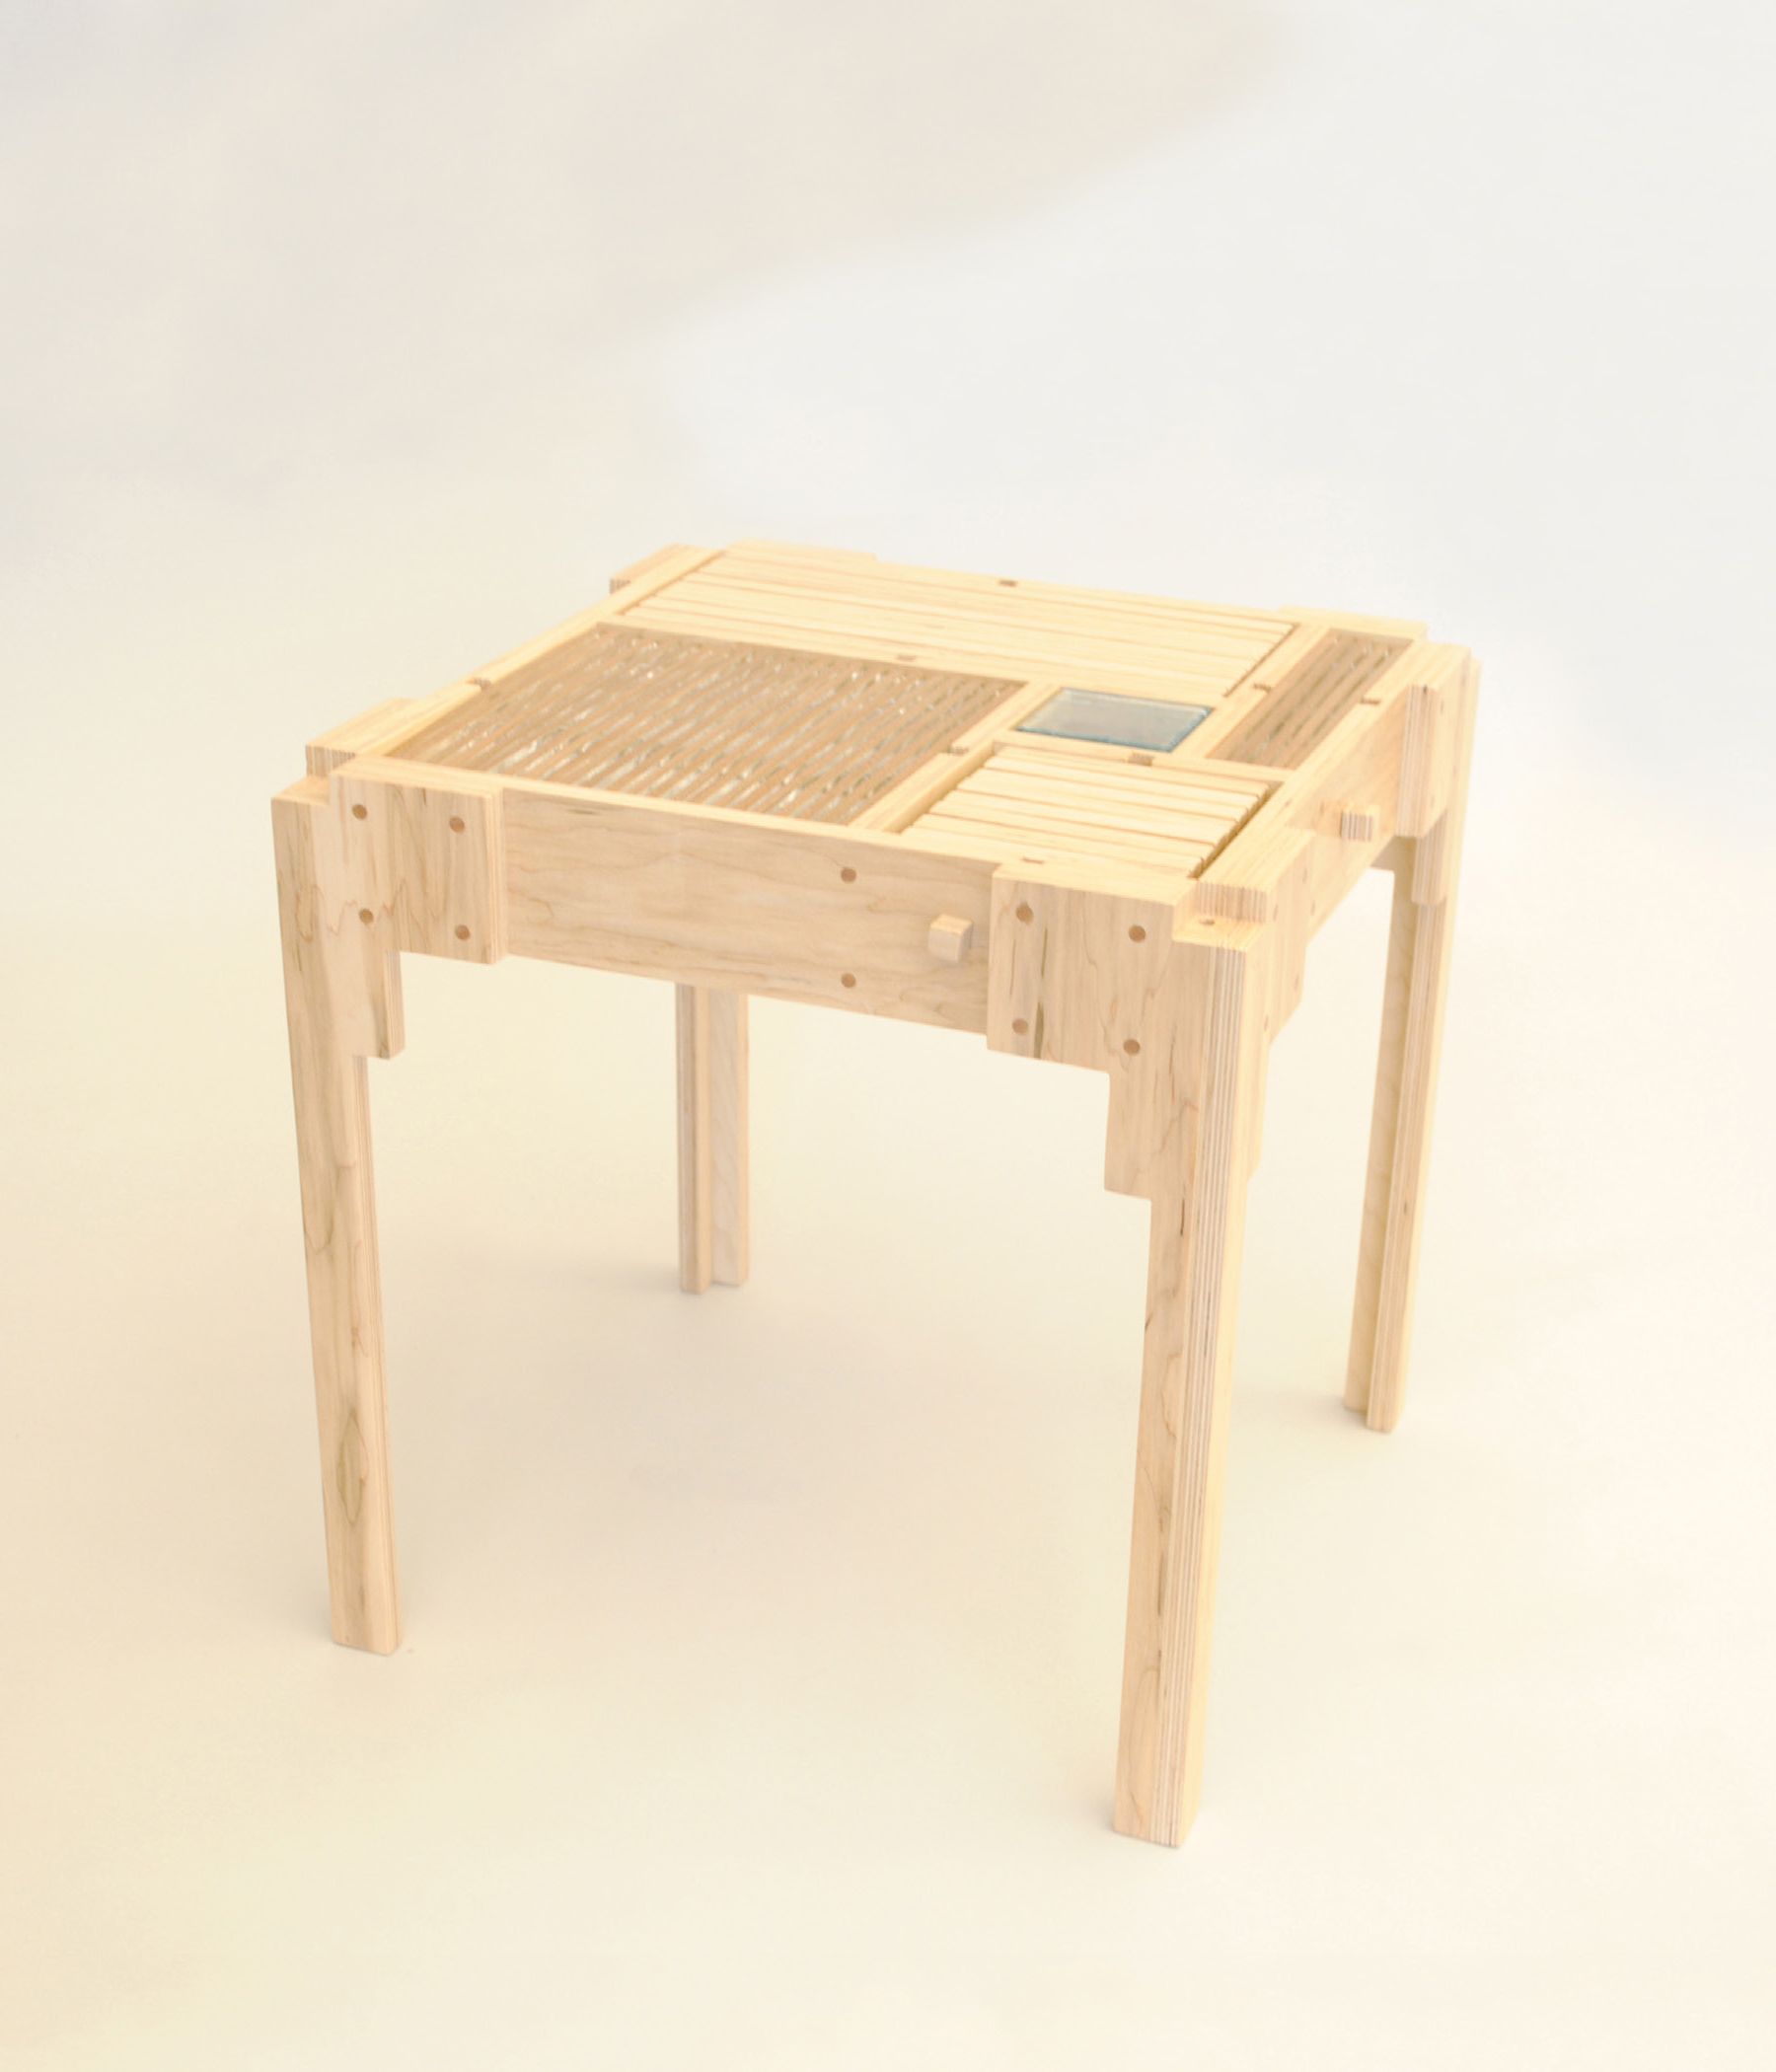 whimsy furniture. A Pending Revolution Whimsy Furniture T